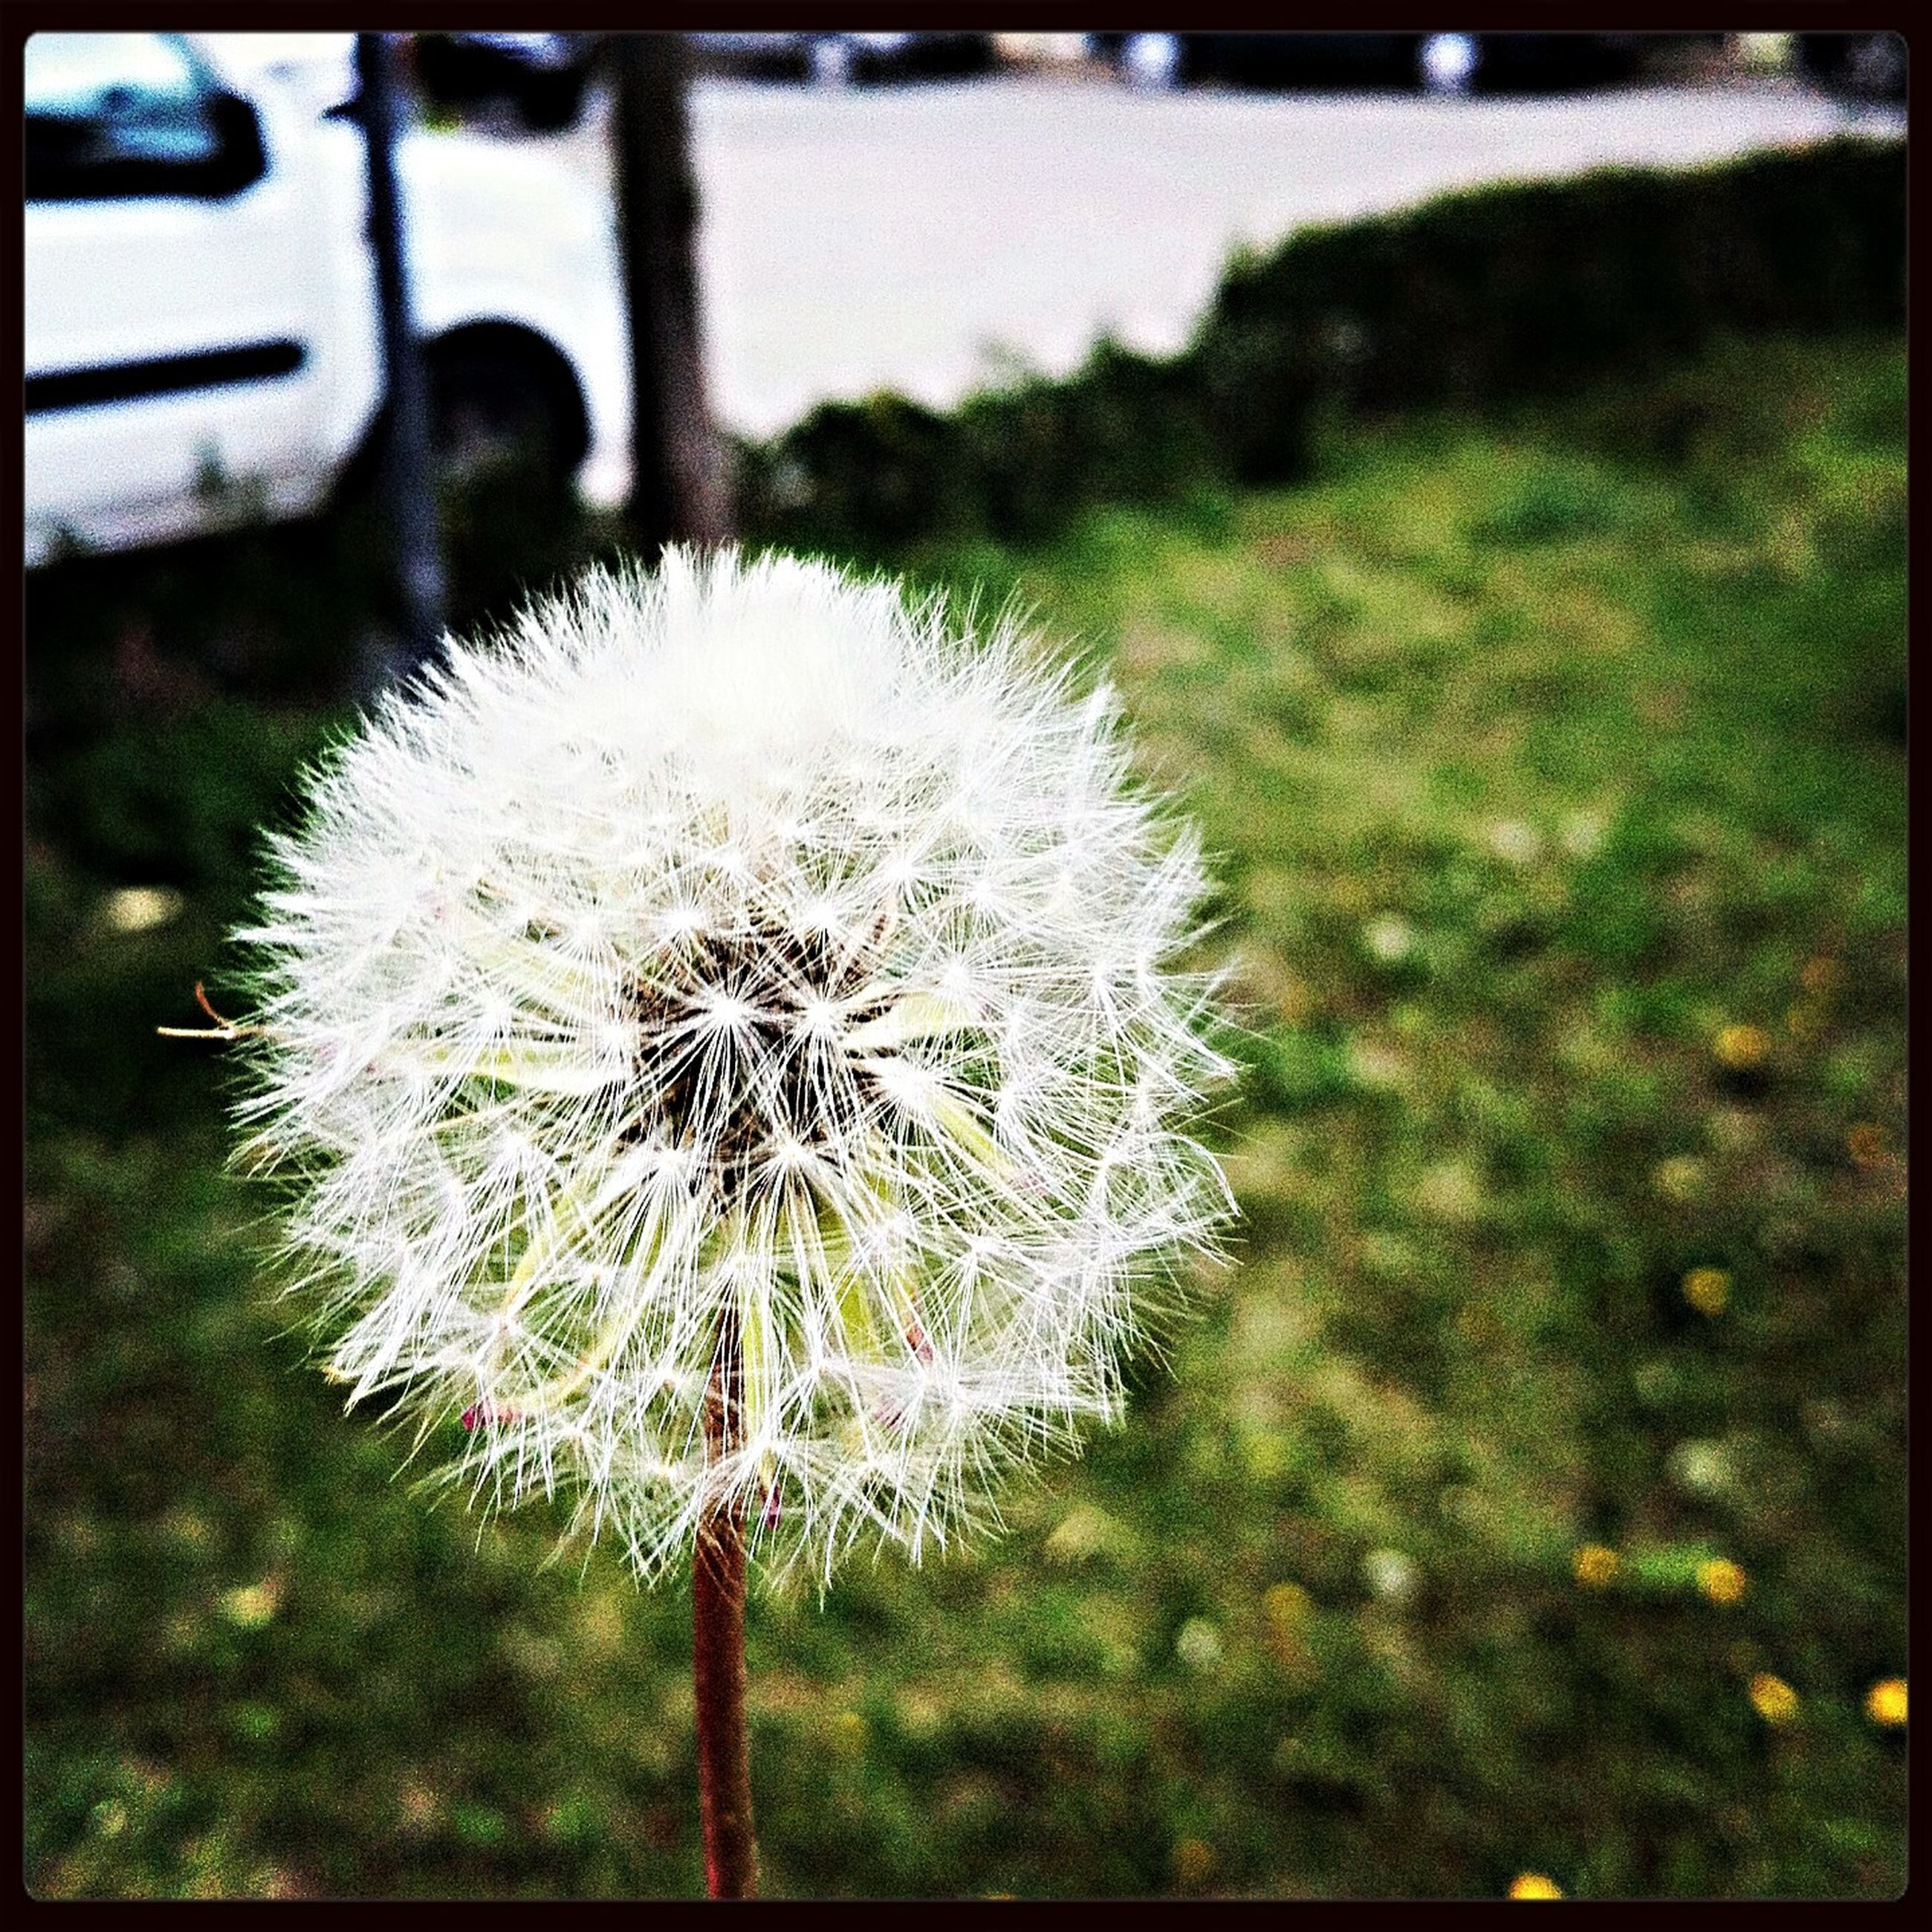 flower, dandelion, growth, fragility, freshness, flower head, nature, beauty in nature, focus on foreground, transfer print, close-up, single flower, plant, white color, auto post production filter, in bloom, stem, blooming, day, wildflower